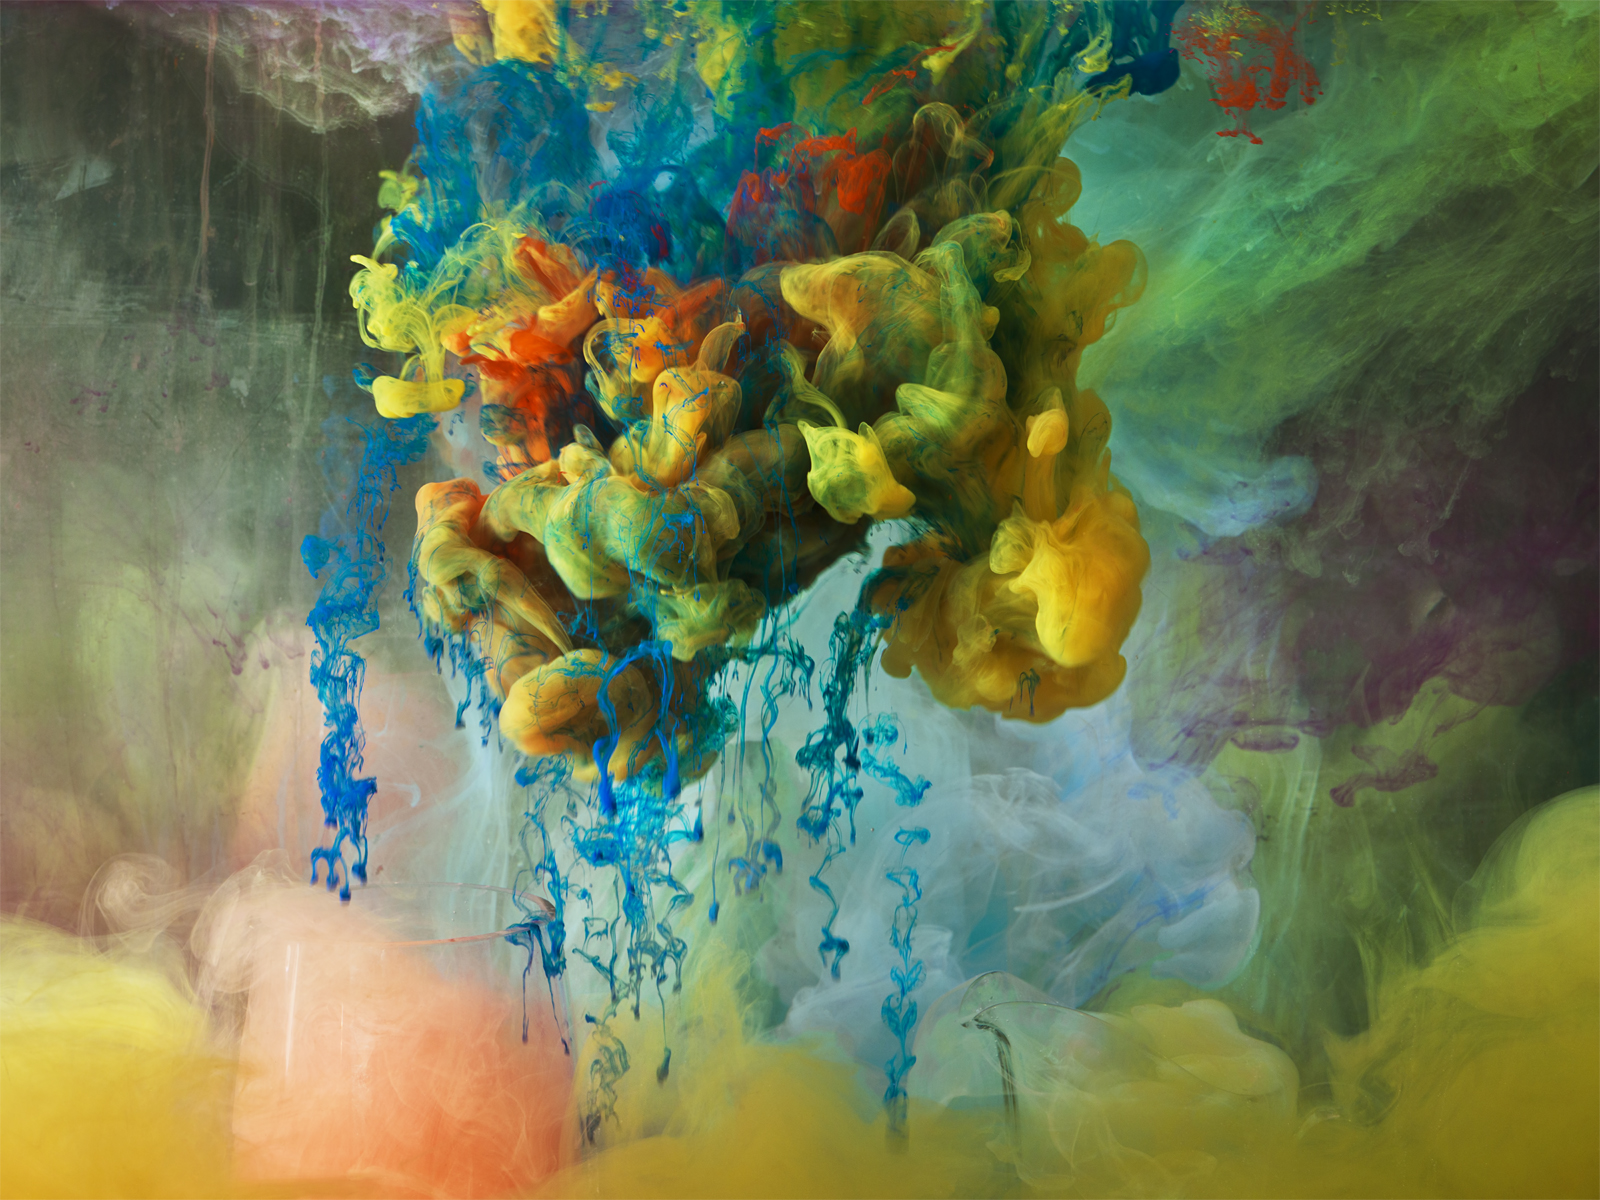 Abstract images - L'astrattismo liquido di Kim Keever | Collater.al